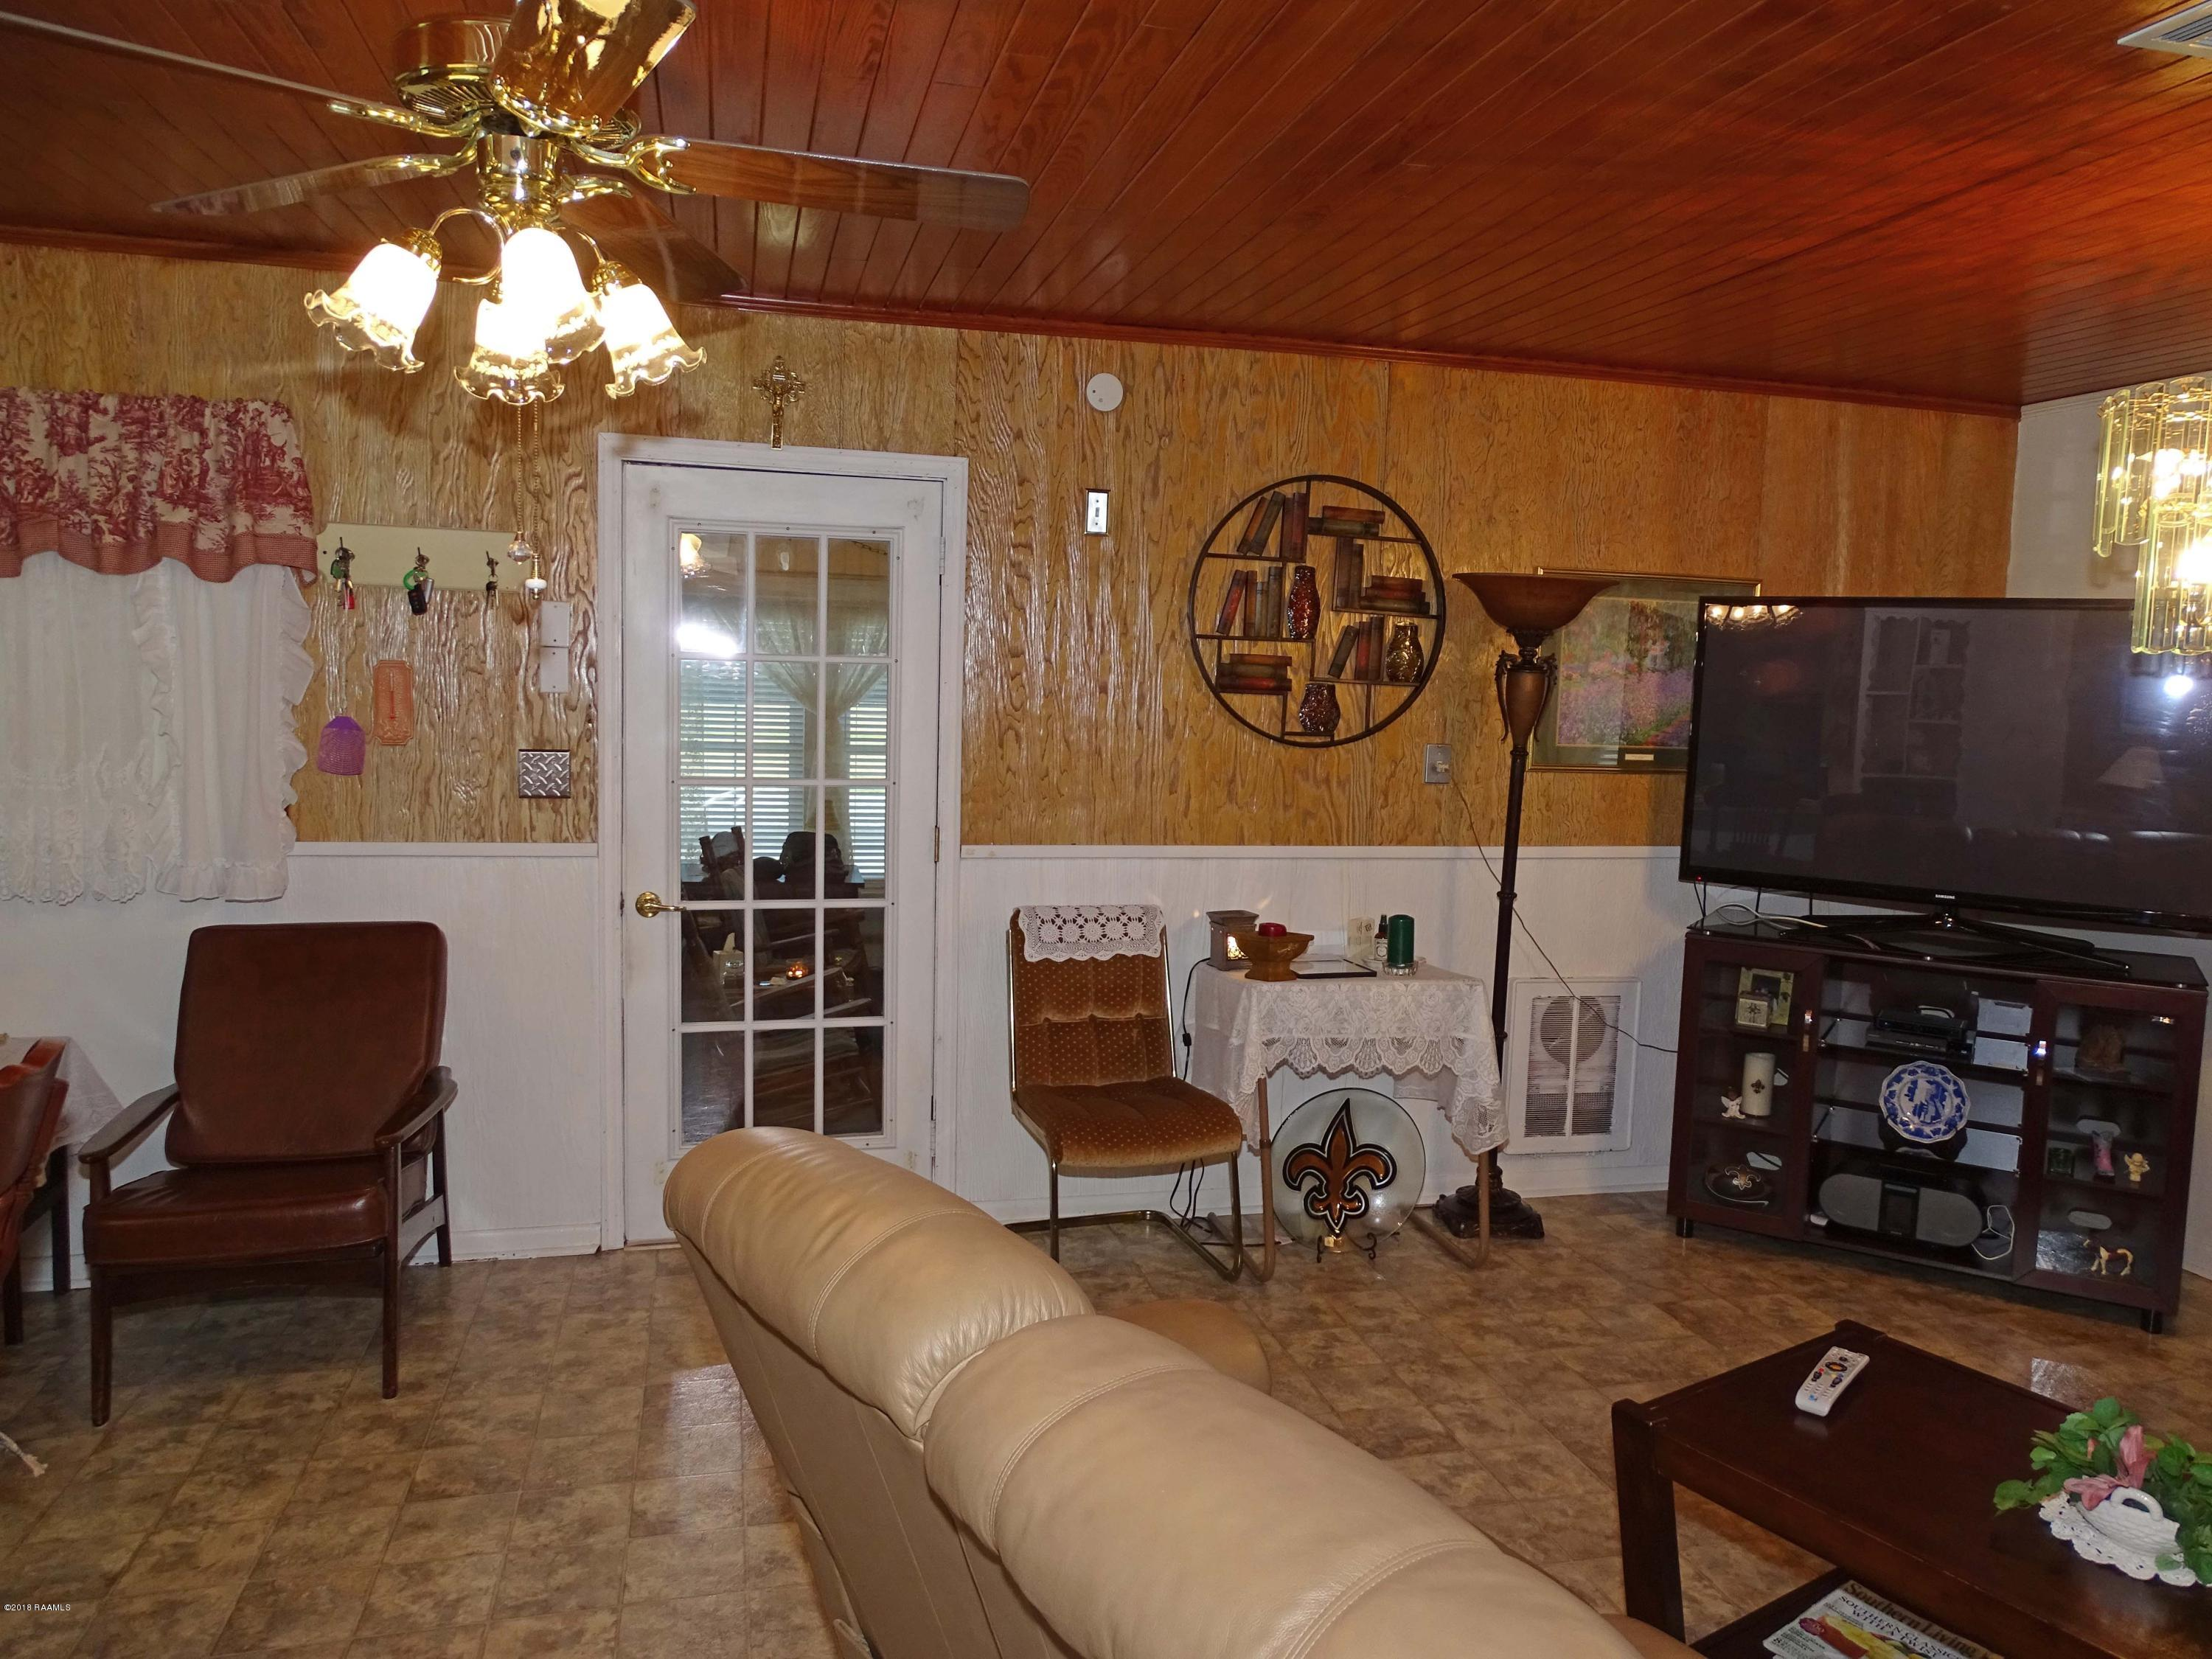 1329 Hwy 752, Church Point, LA 70525 Photo #3